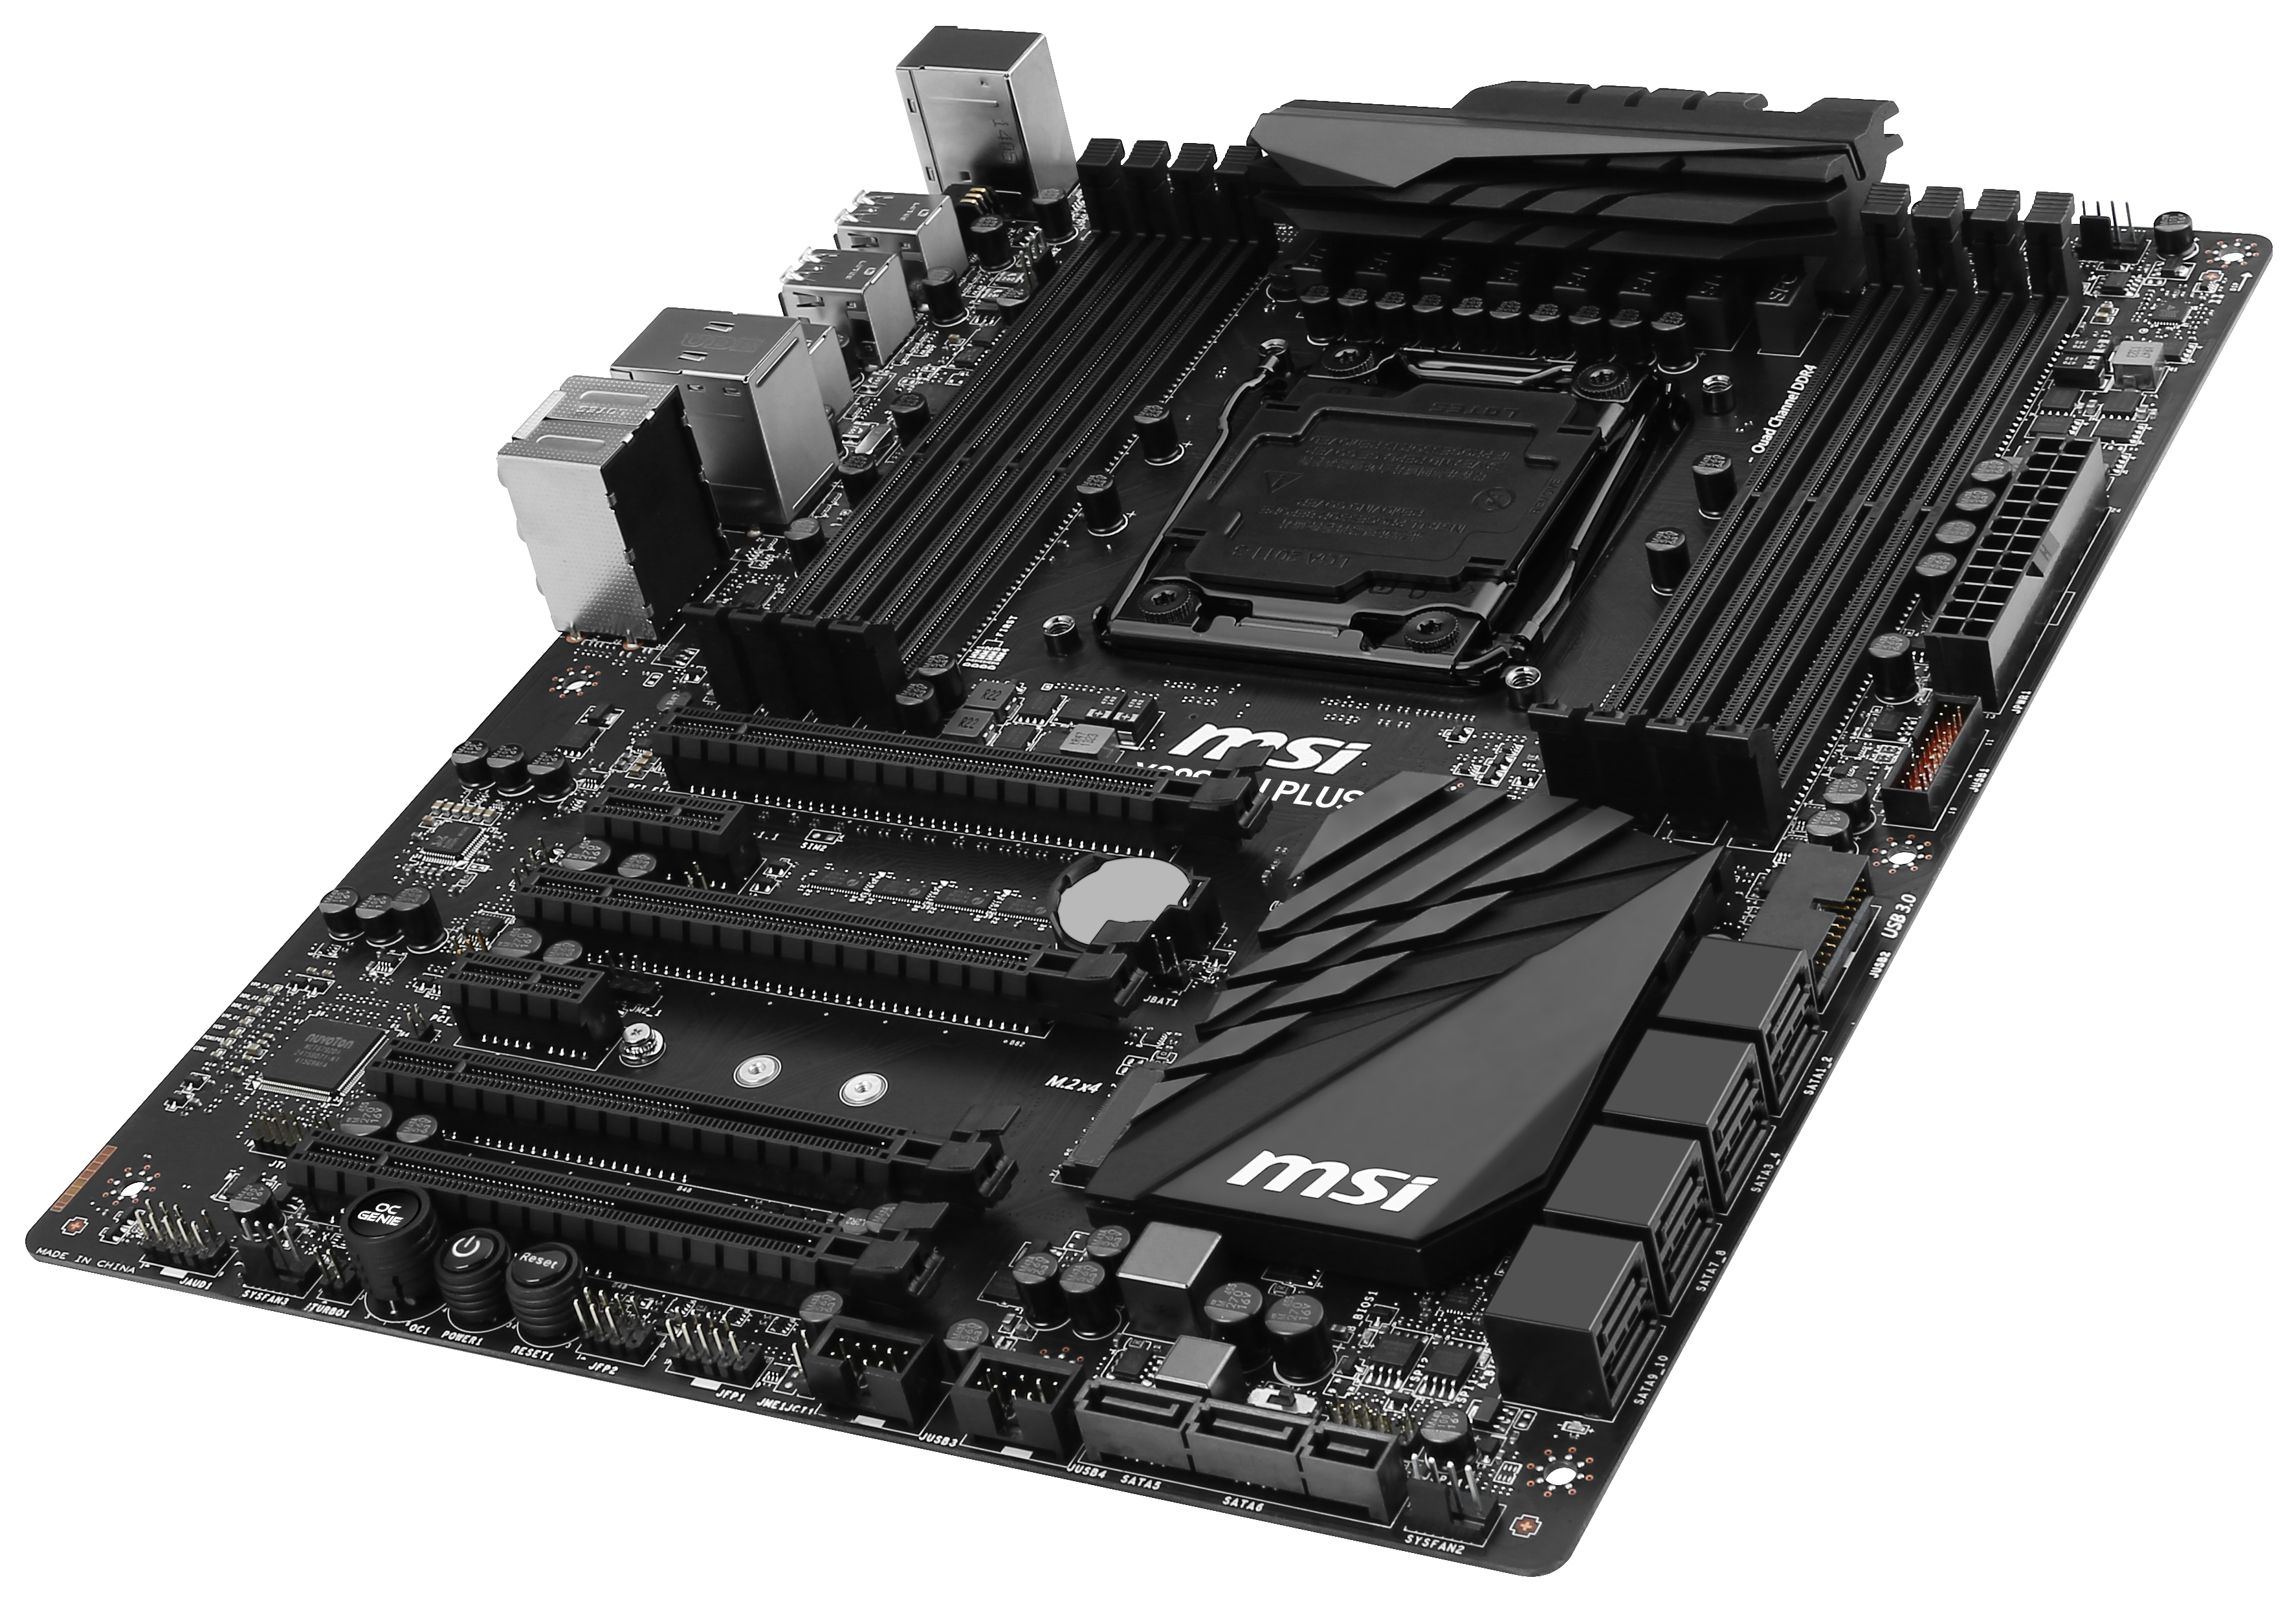 MSI X99S GAMING 7 ASMEDIA USB 3.0 DRIVERS FOR WINDOWS 8